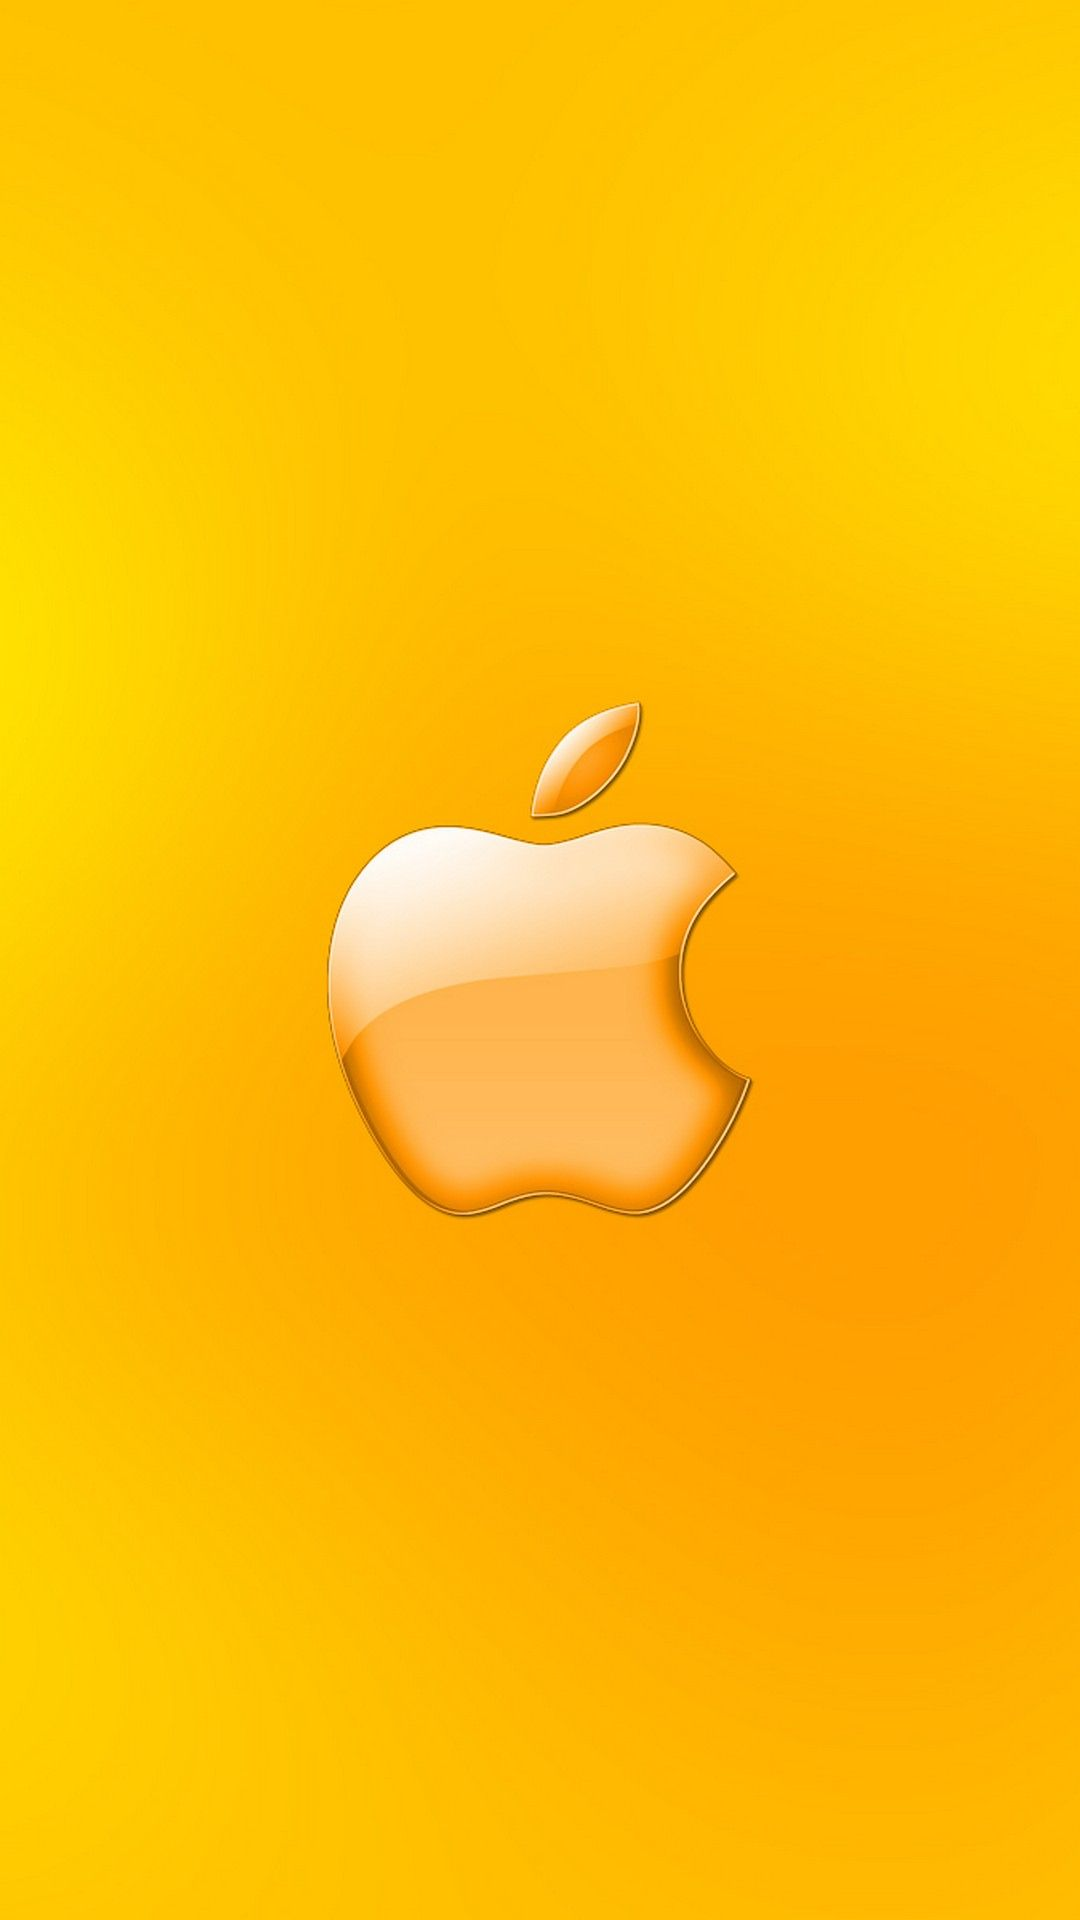 1080x1920 Apple Gold Logo For Android Wallpaper - 2019 Android Wallpapers